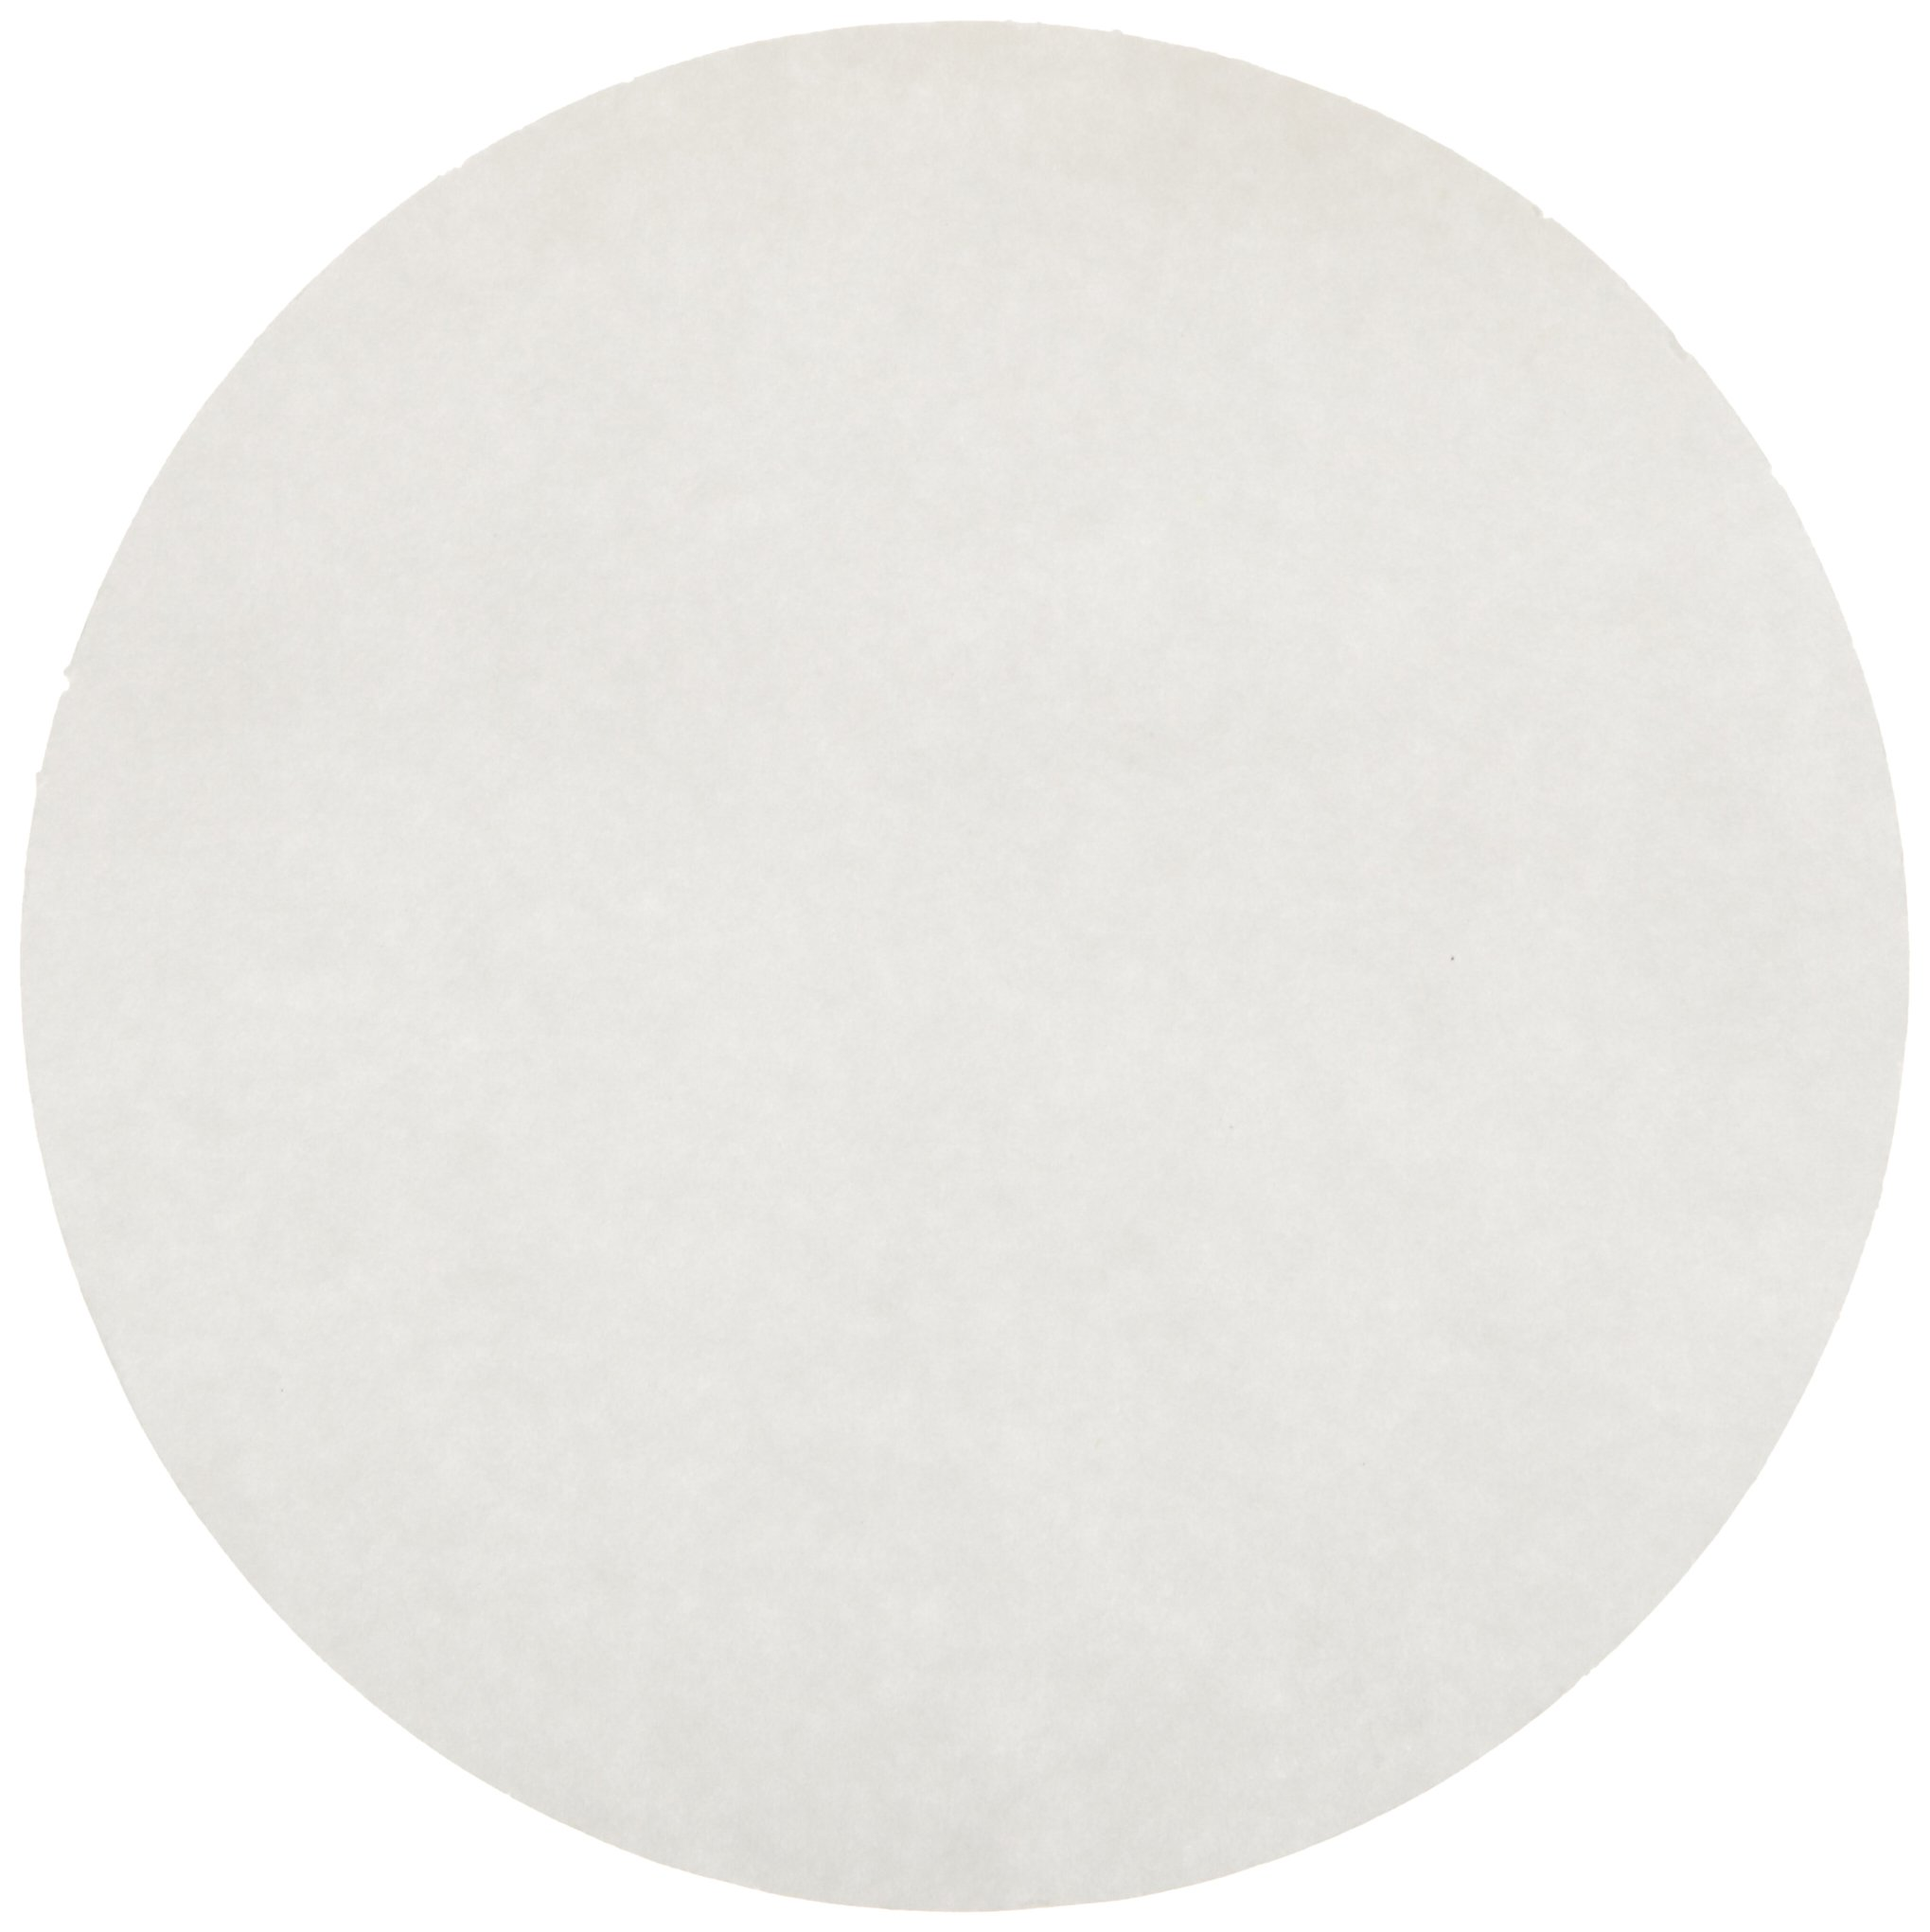 Ahlstrom 0950-1250 Quantitative Filter Paper, 1.5 Micron, Slow Flow, Grade 95, 12.5cm Diameter (Pack of 100) by Ahlstrom (Image #1)